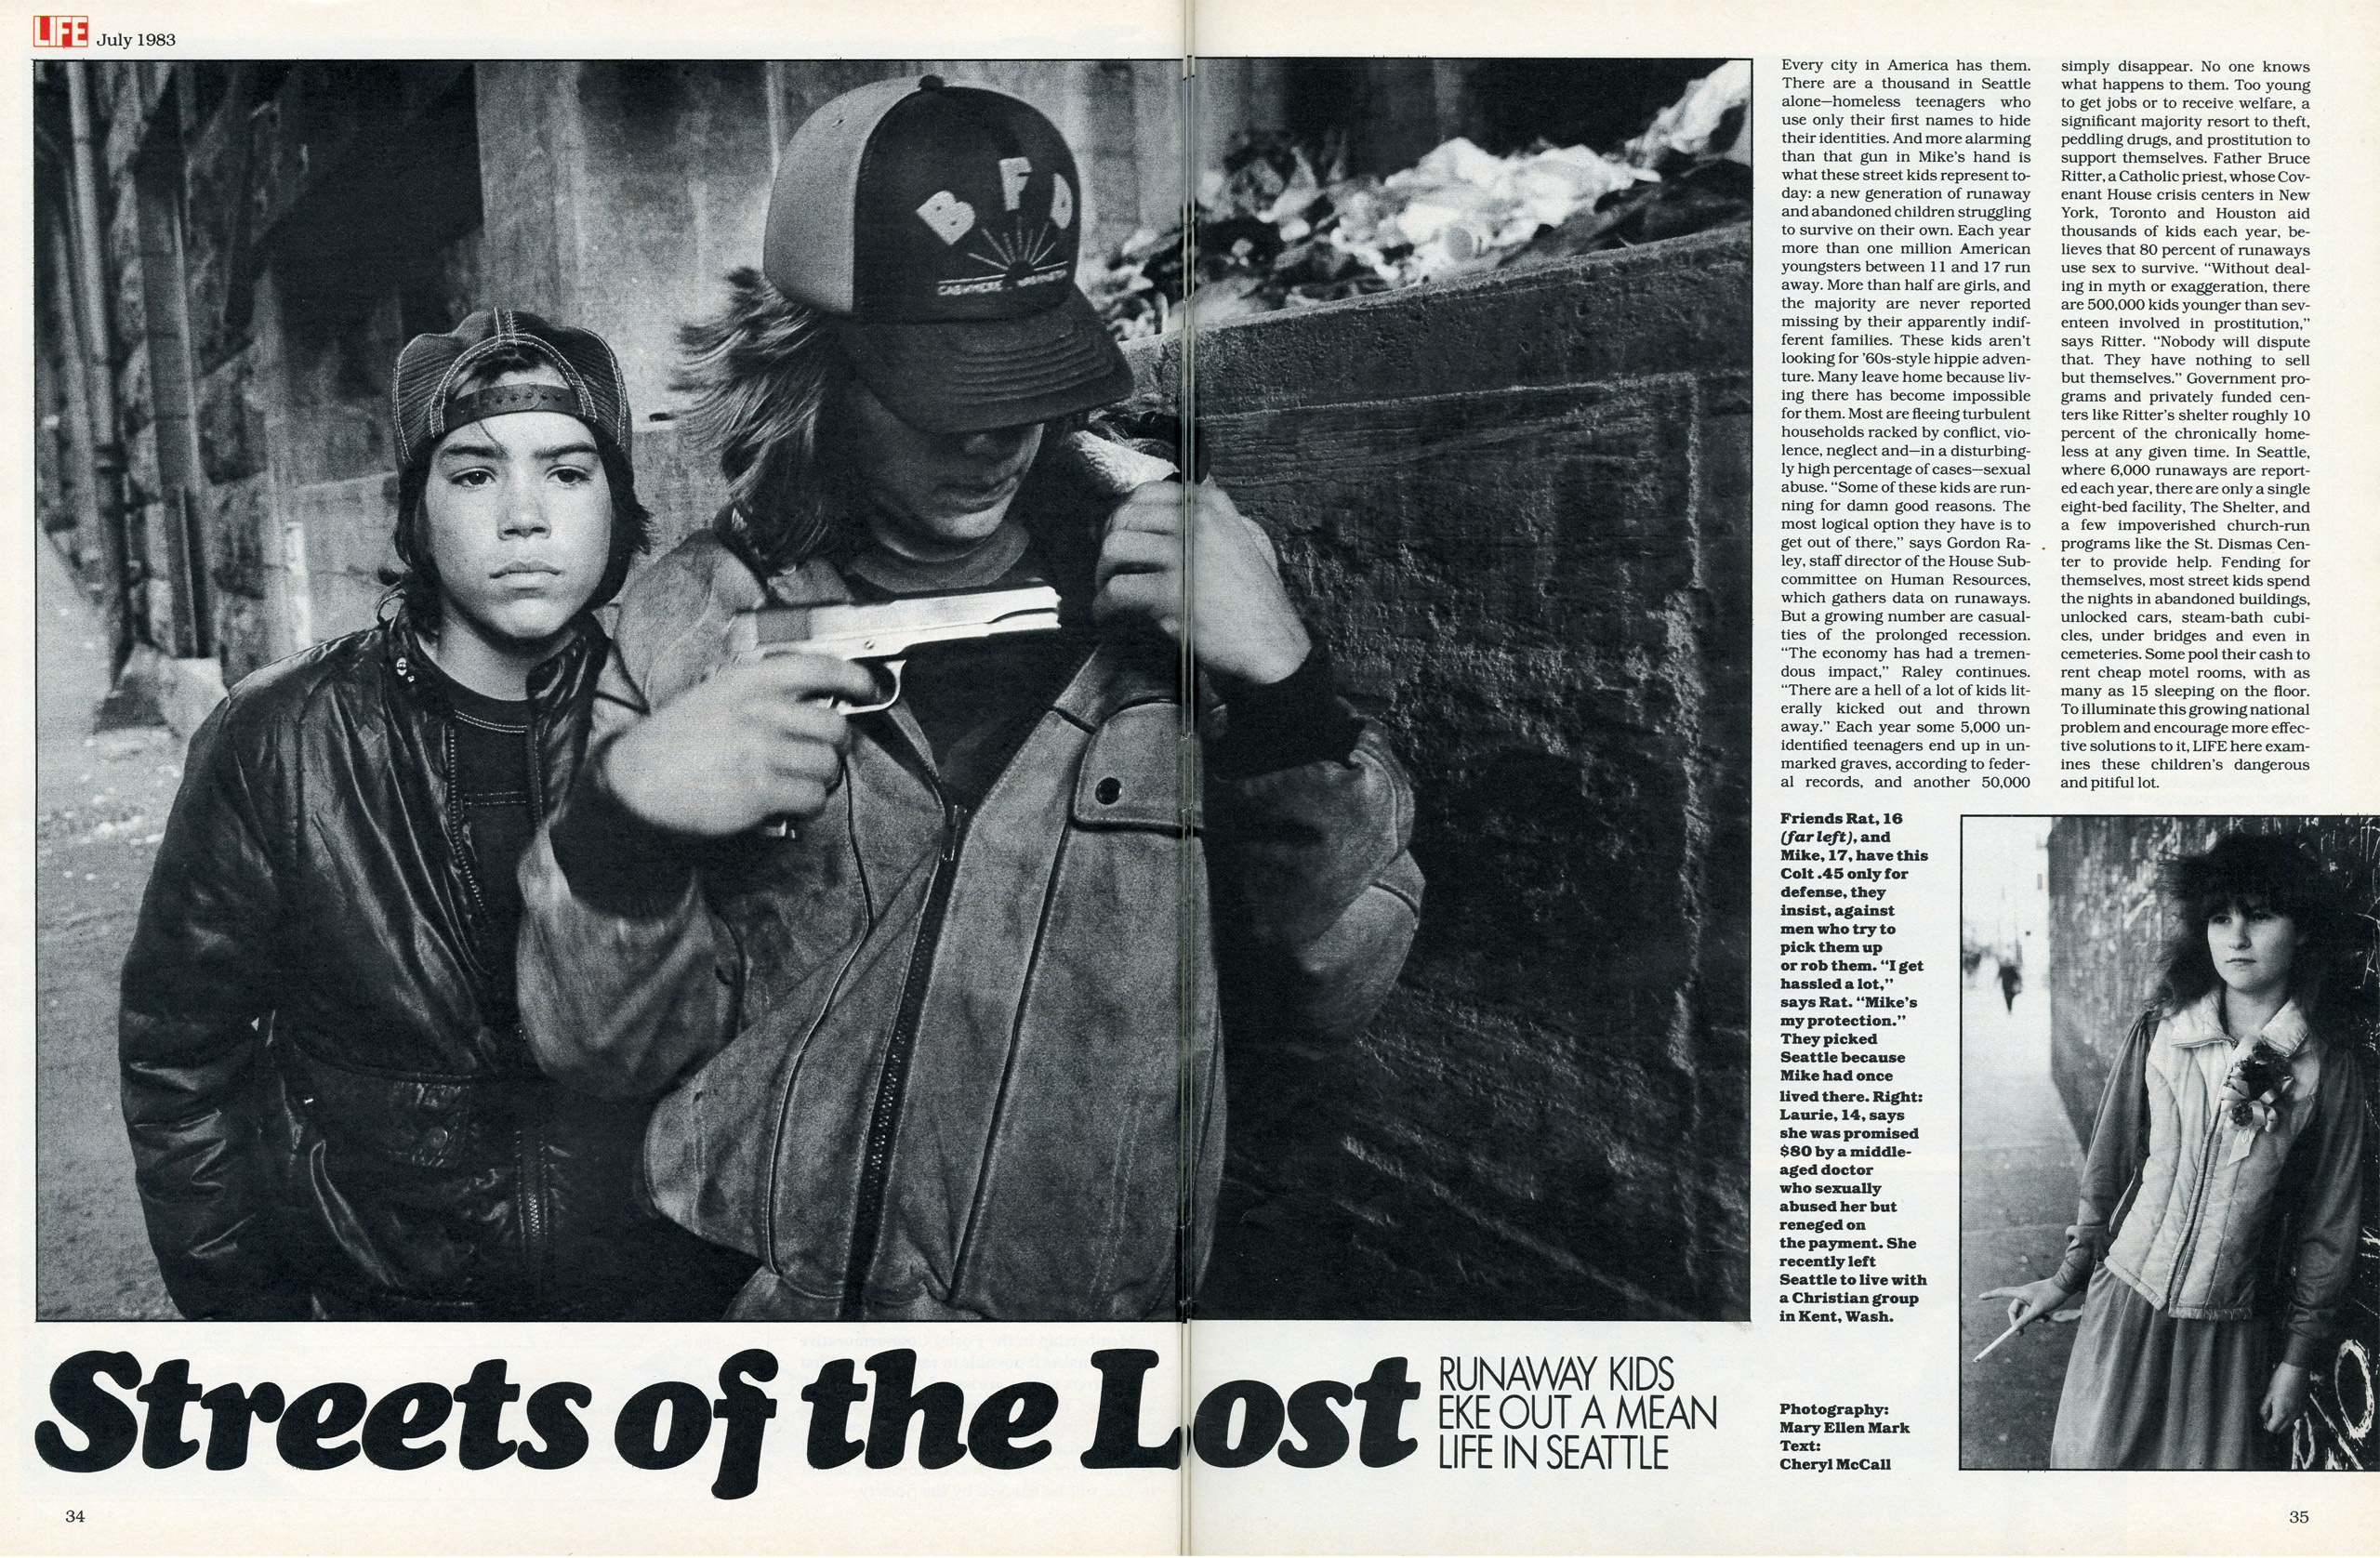 """Streets of the Lost: Runaway Kids eke out a mean life in Seattle""—LIFE magazine, July 1983."